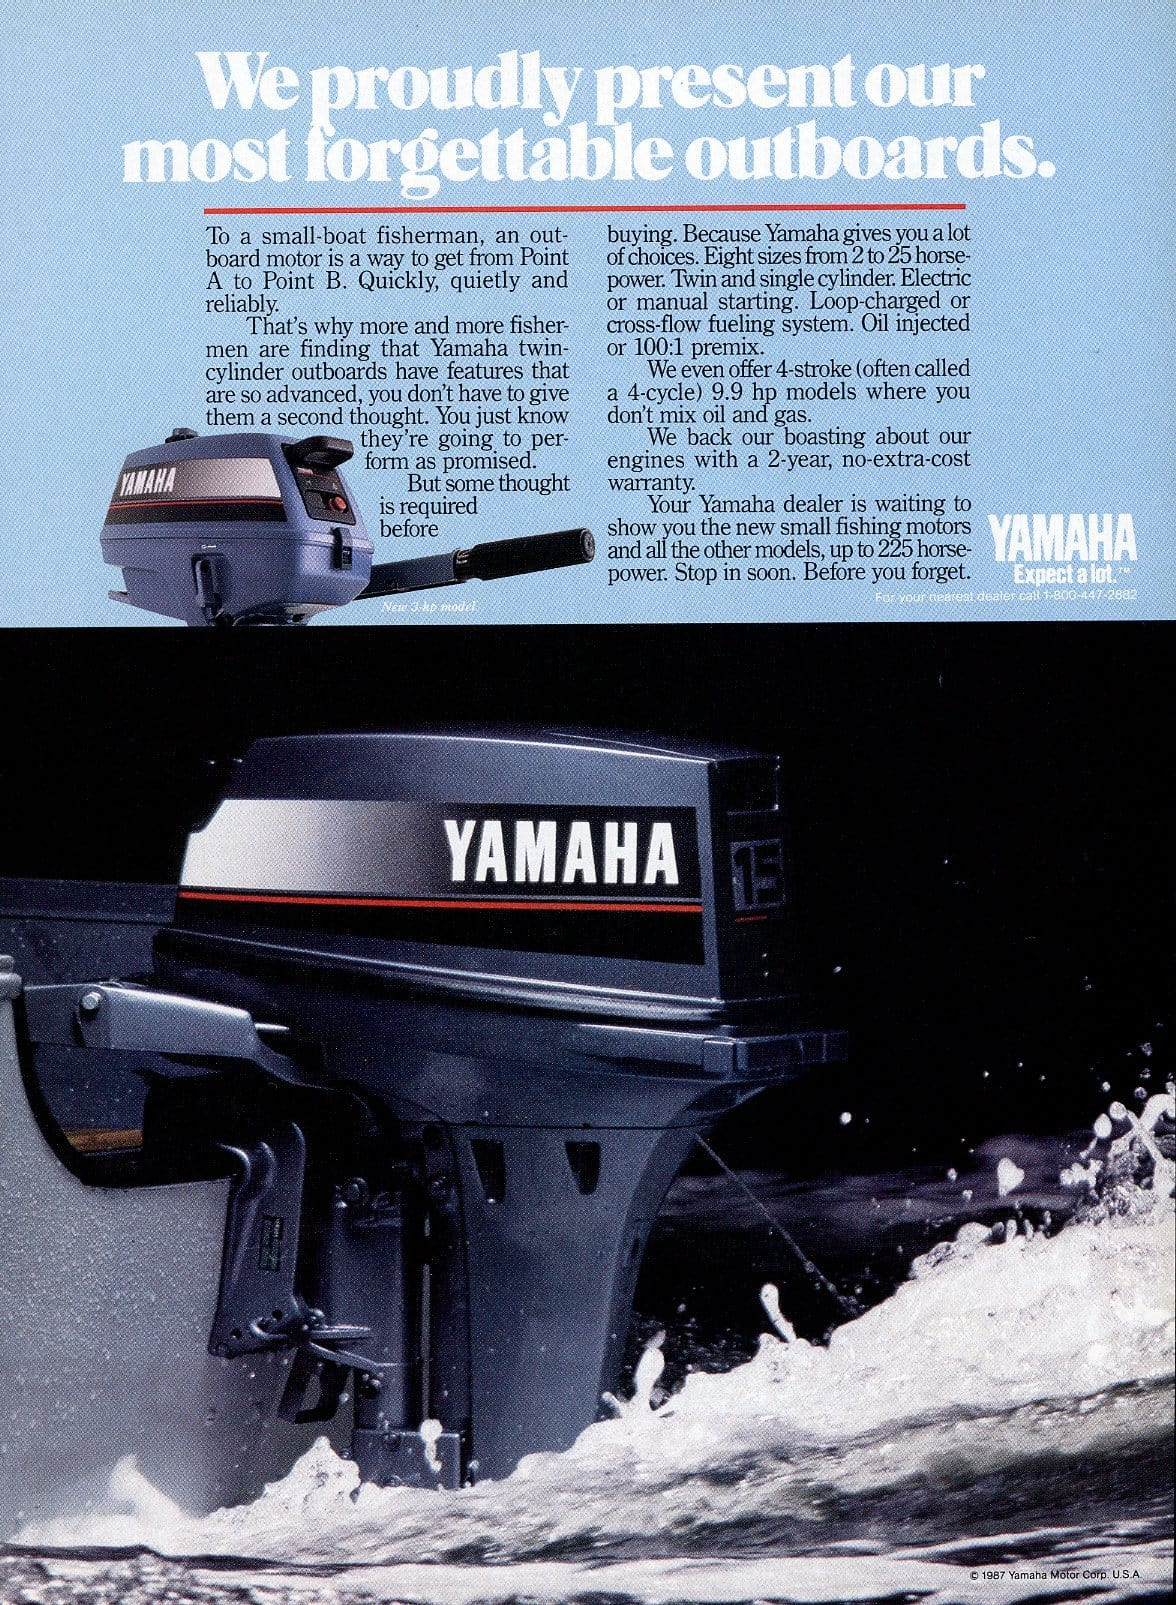 1980's Yamaha Outboard Motor Advertisement - Boating Enthusiast Gift - Watersport Wall Decor